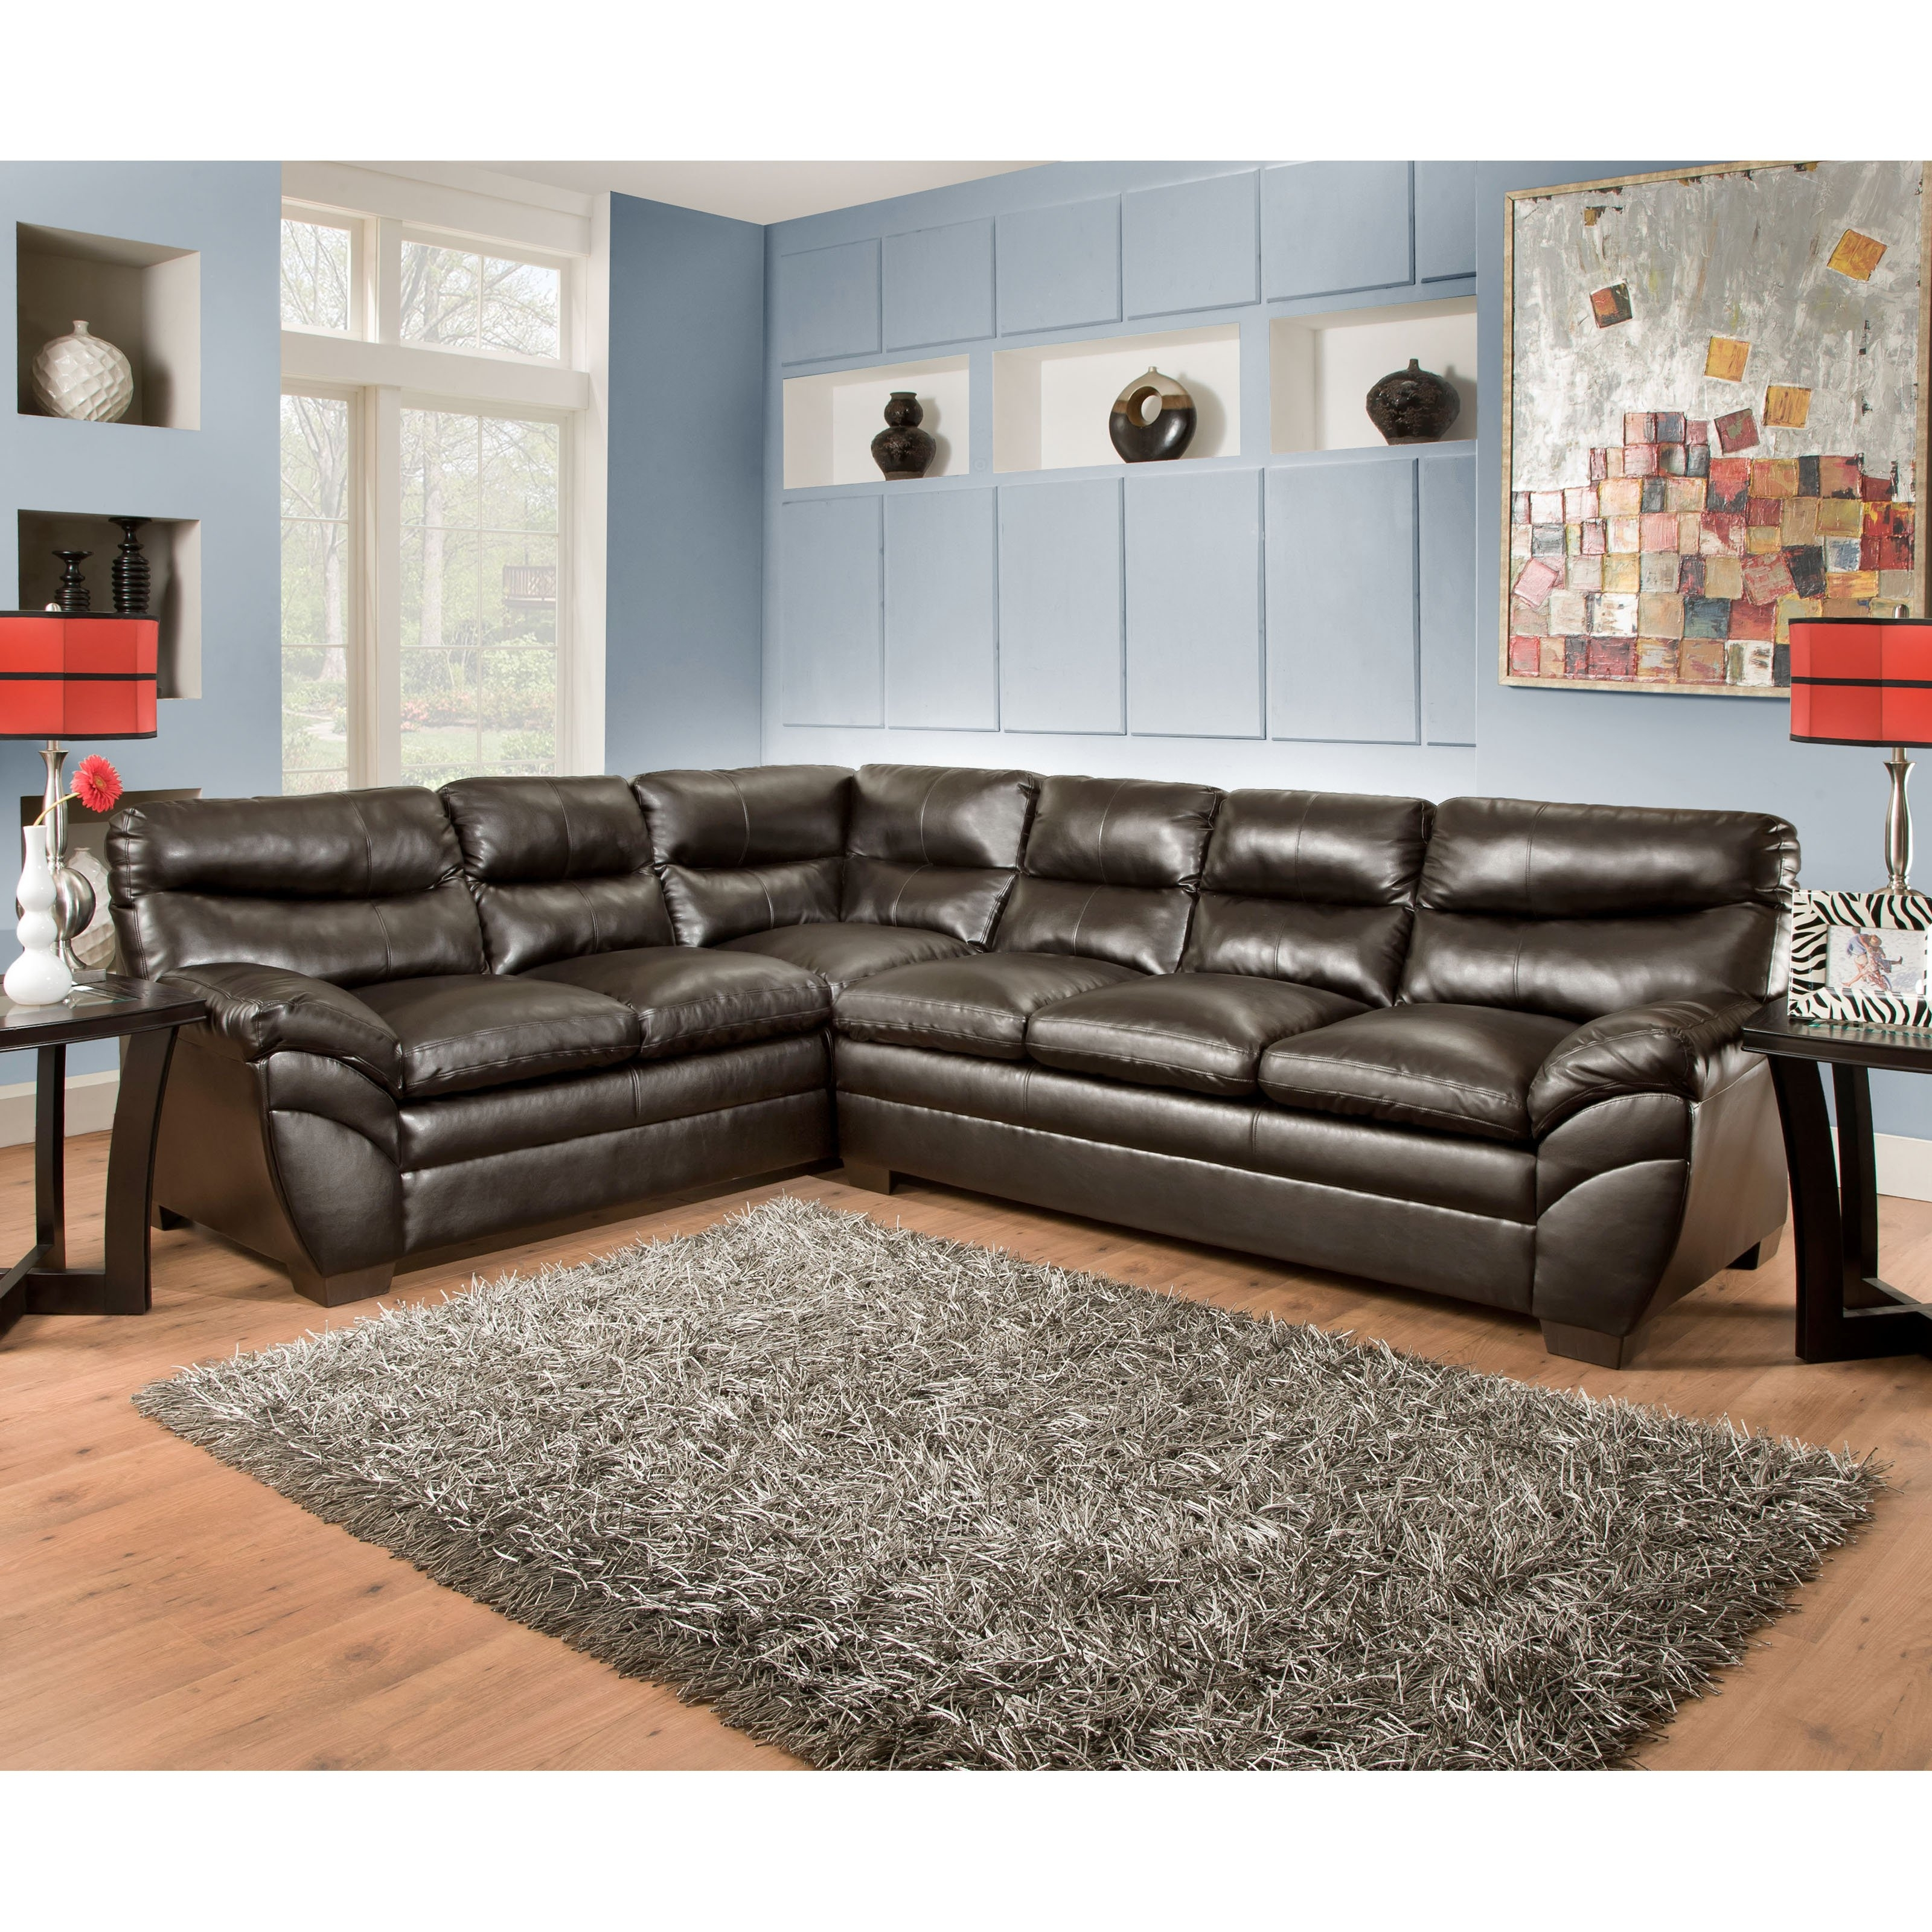 Simmons Soho Bonded Leather Sectional | Hayneedle in Lucy Dark Grey 2 Piece Sleeper Sectionals With Laf Chaise (Image 26 of 30)